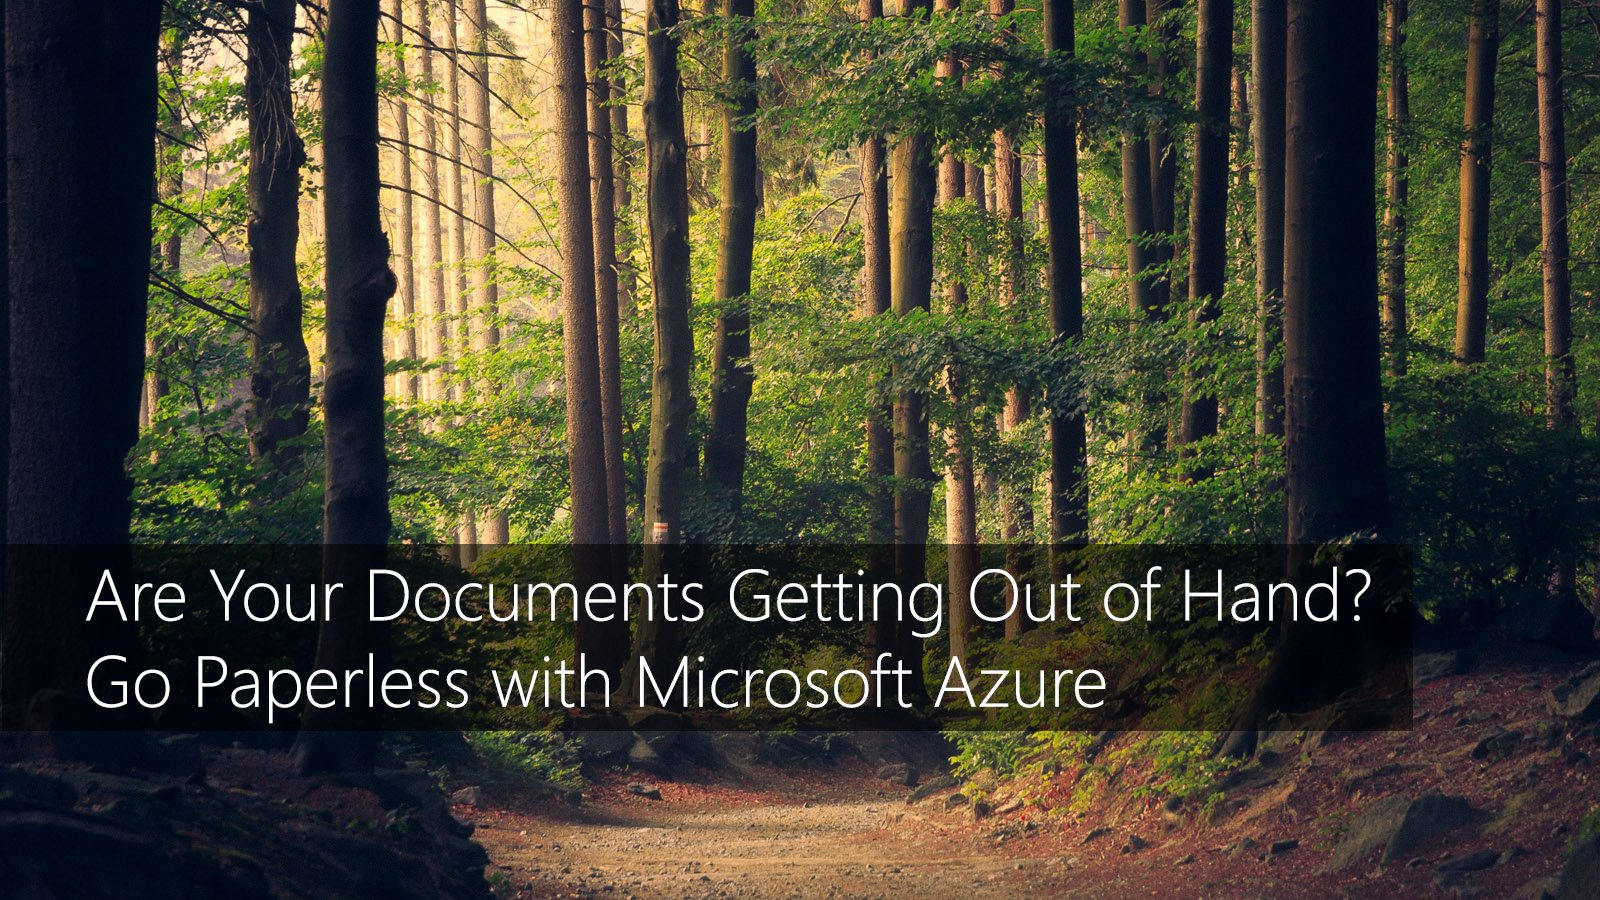 Are Your Documents Getting Out of Hand? Go Paperless with Microsoft Azure